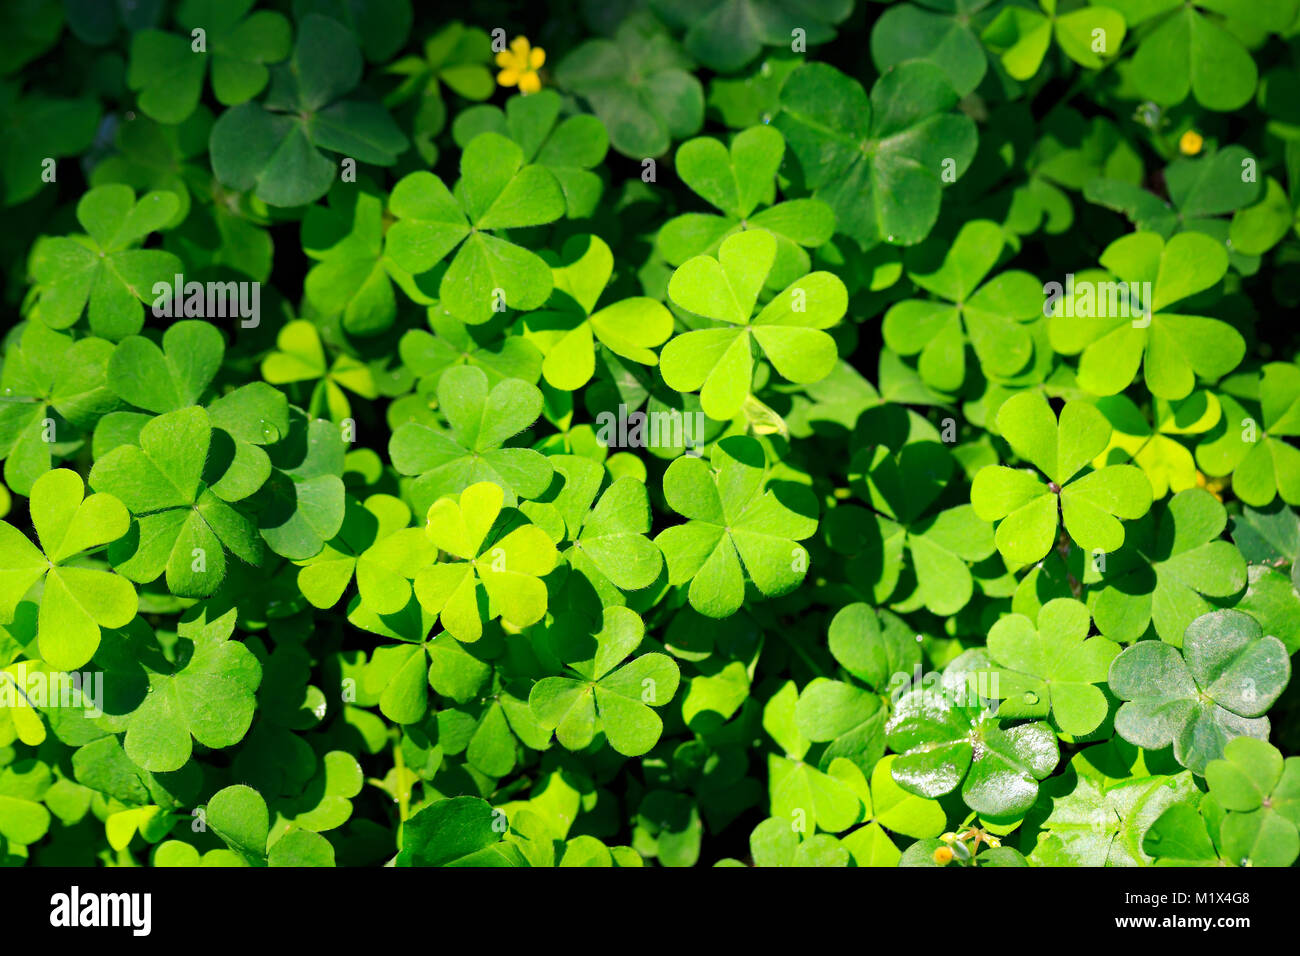 Clover and little yellow flower stock photo royalty free image clover and little yellow flower mightylinksfo Choice Image